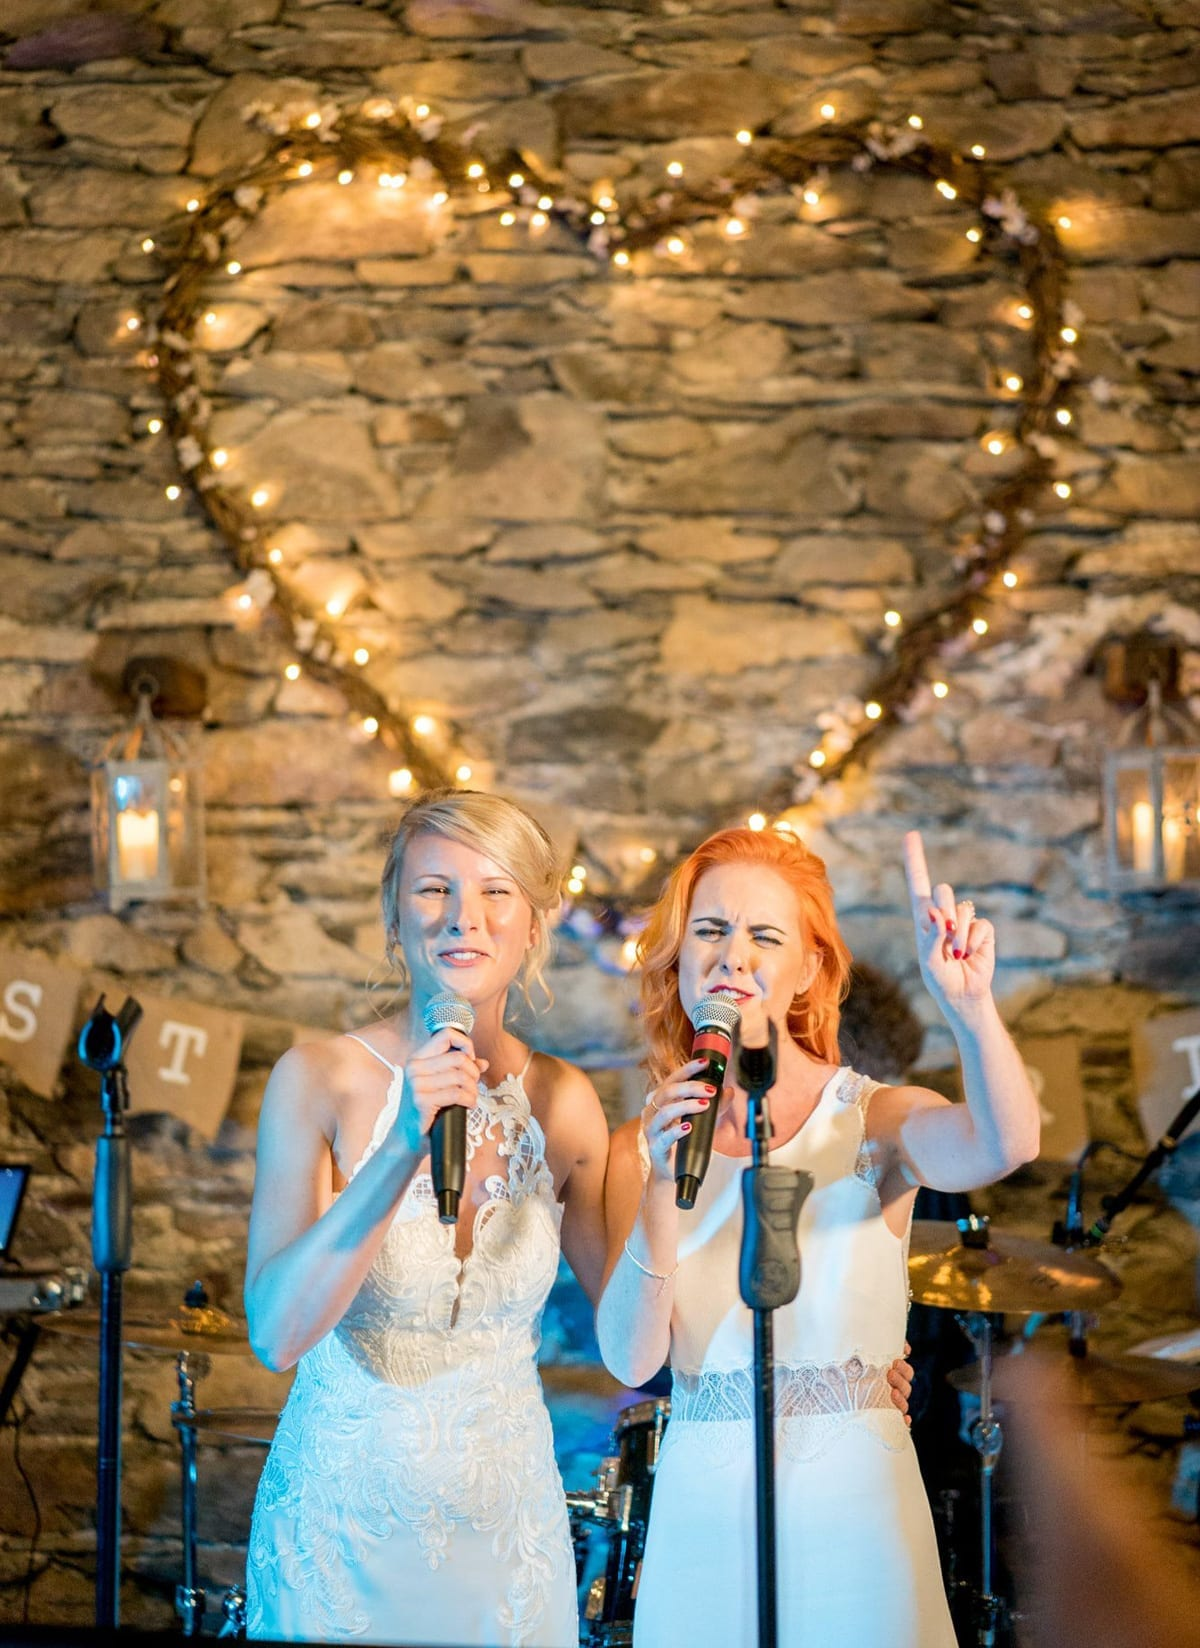 Wedding-Music----Two-Brides-singing-by-Derwent-Photography